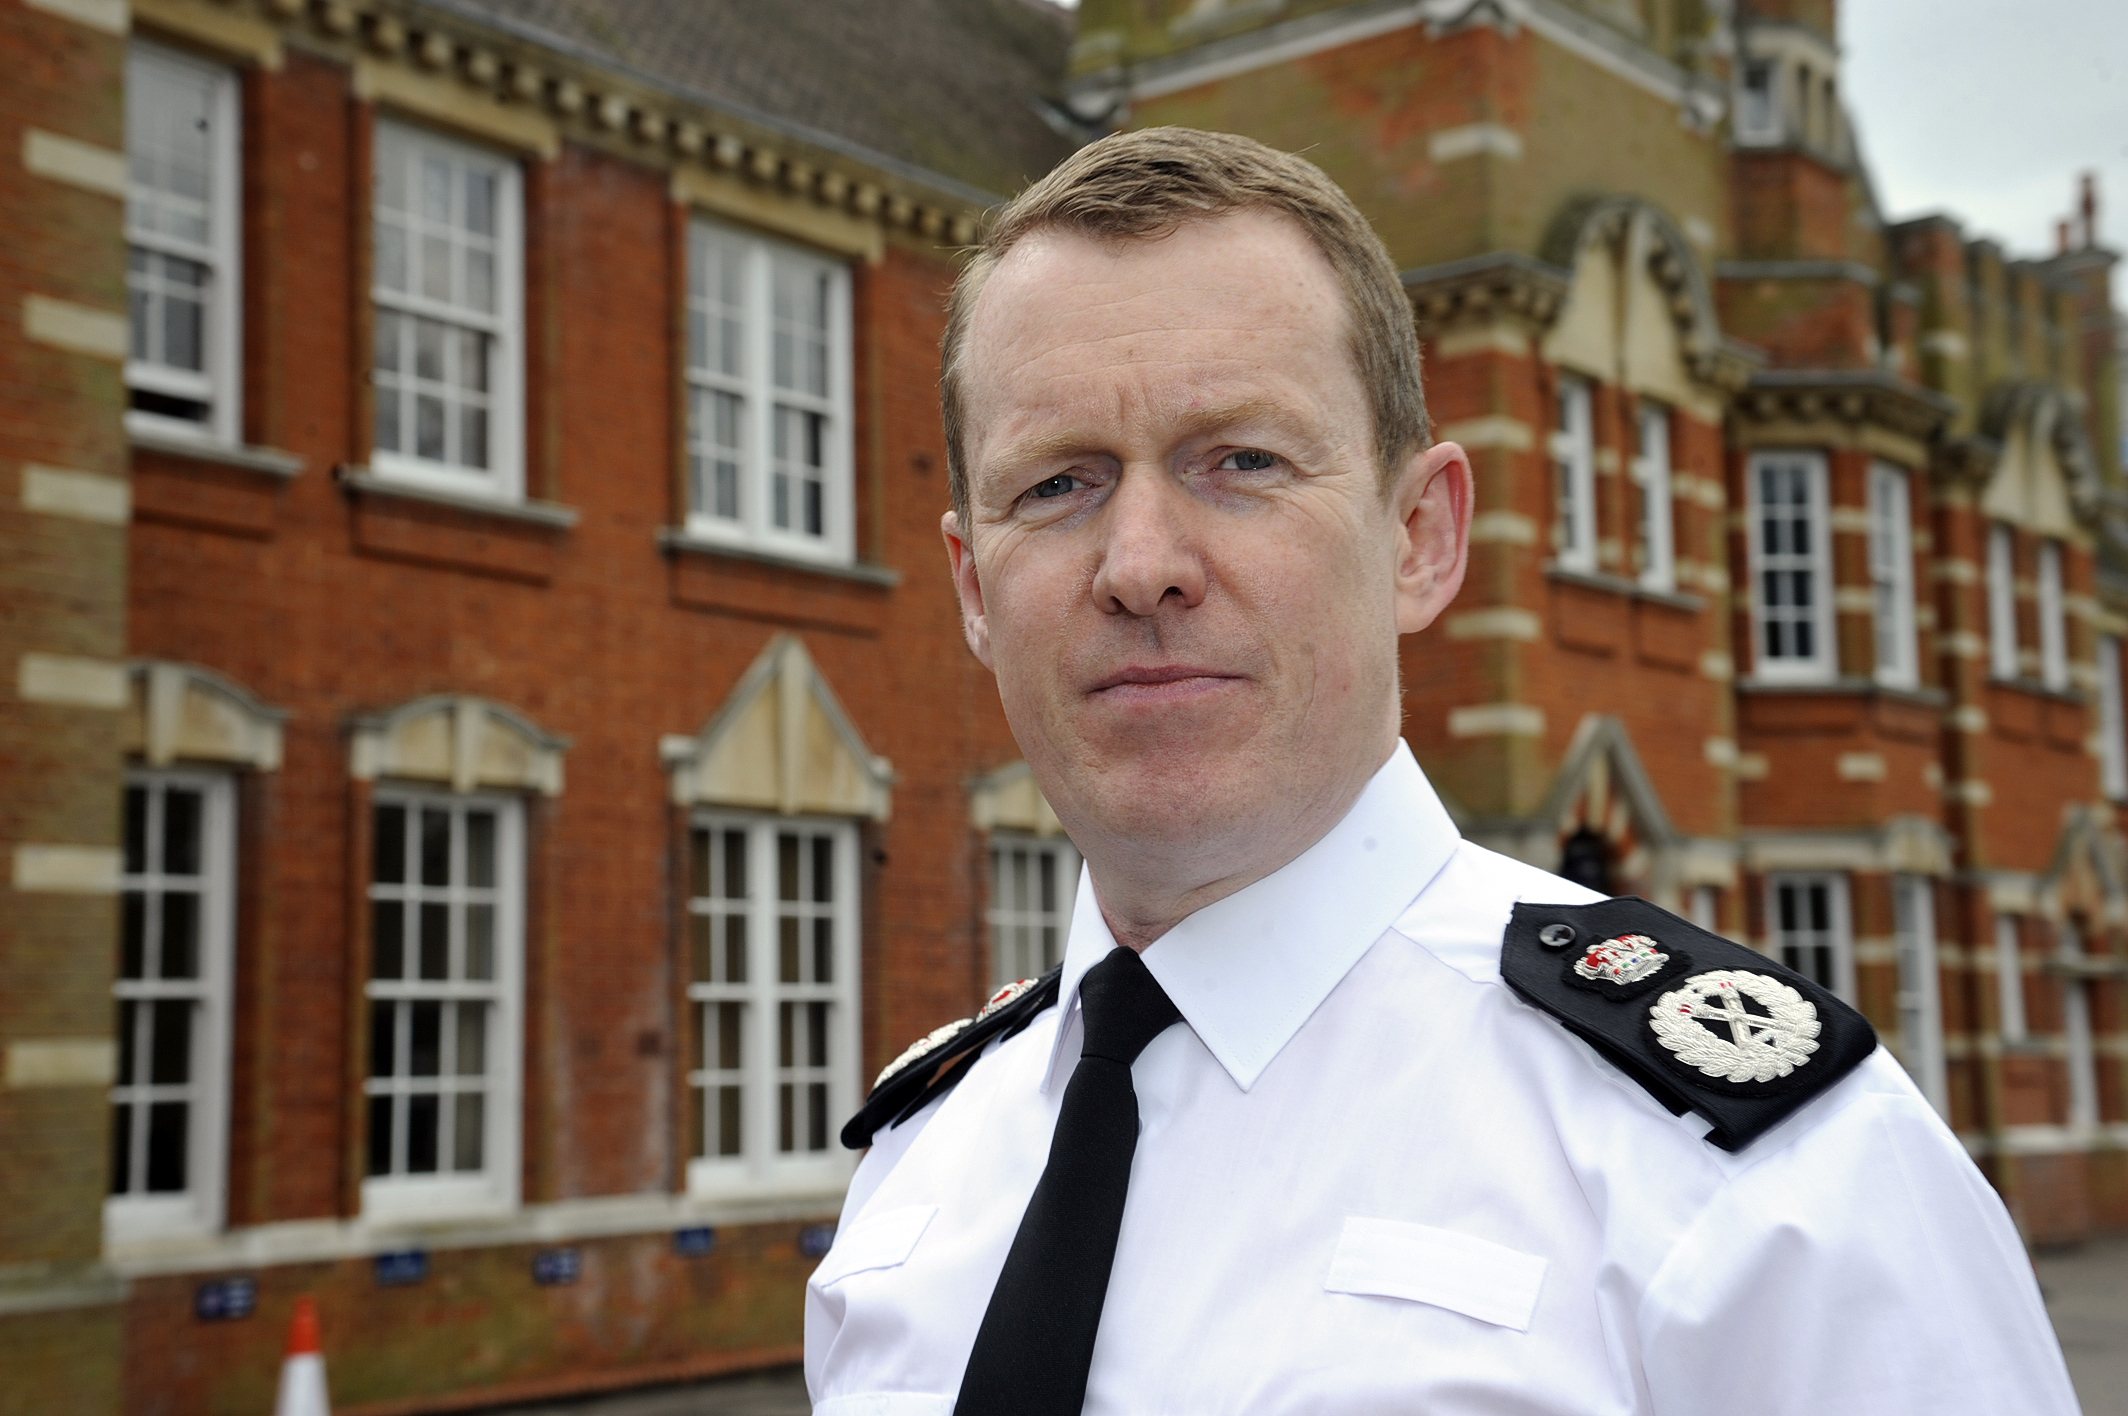 Chief Constable Stephen Kavanagh was the first man on the scene